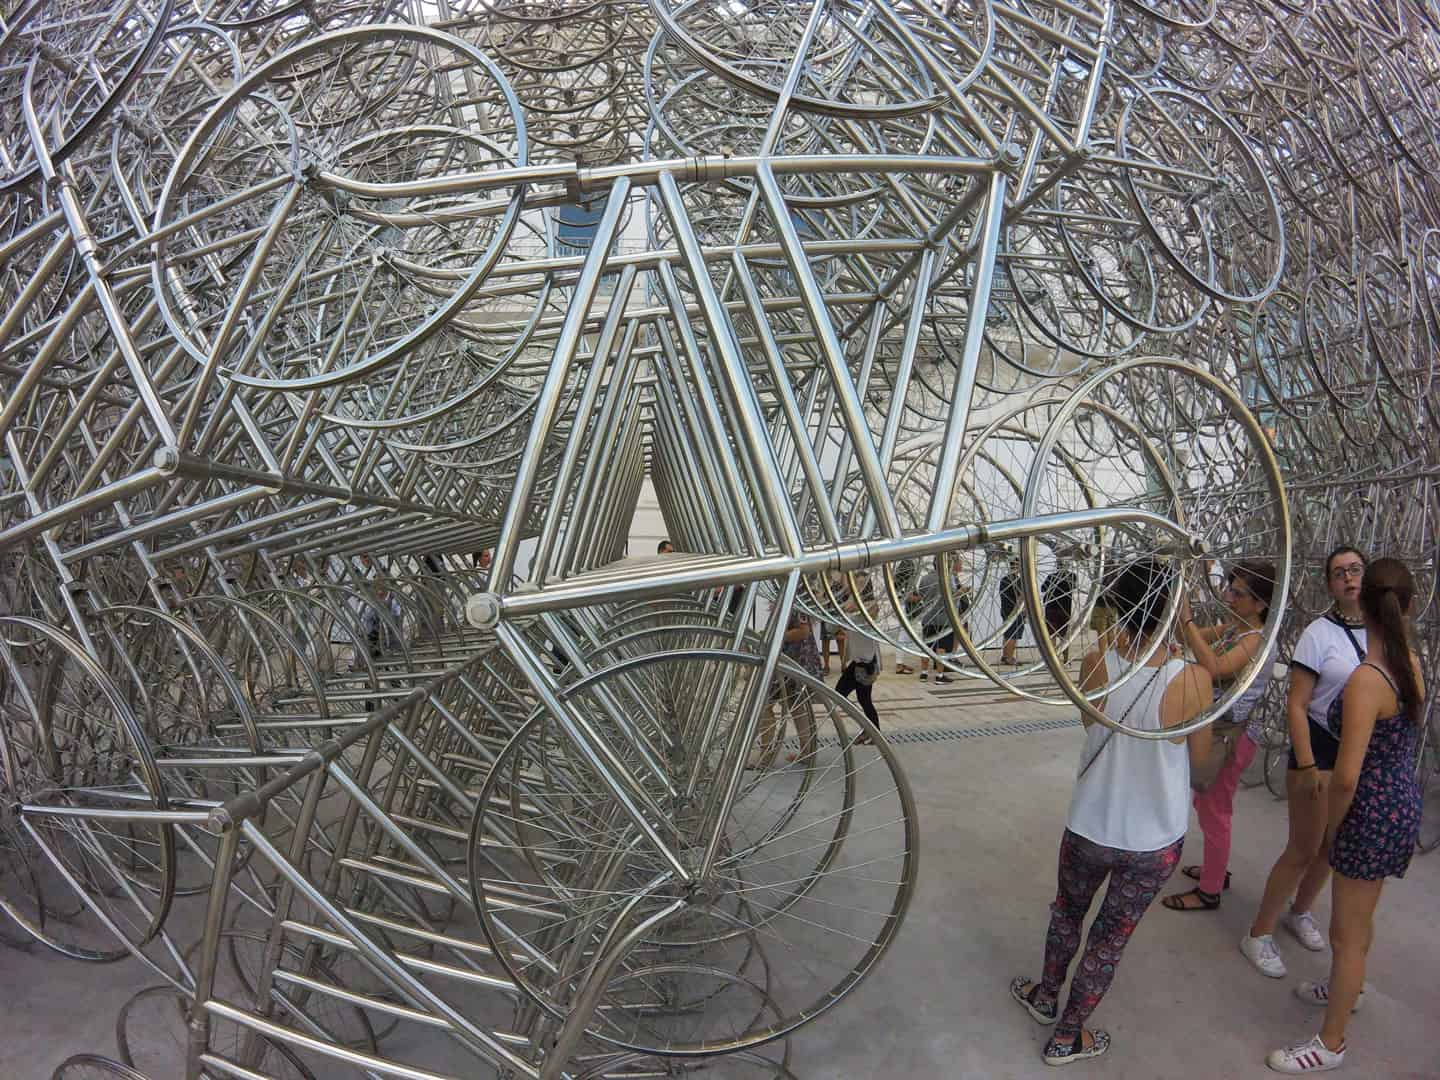 Ai Weiwei Bike Sculpture at Fundacion Proa in Caminito Area - Close Up Shot